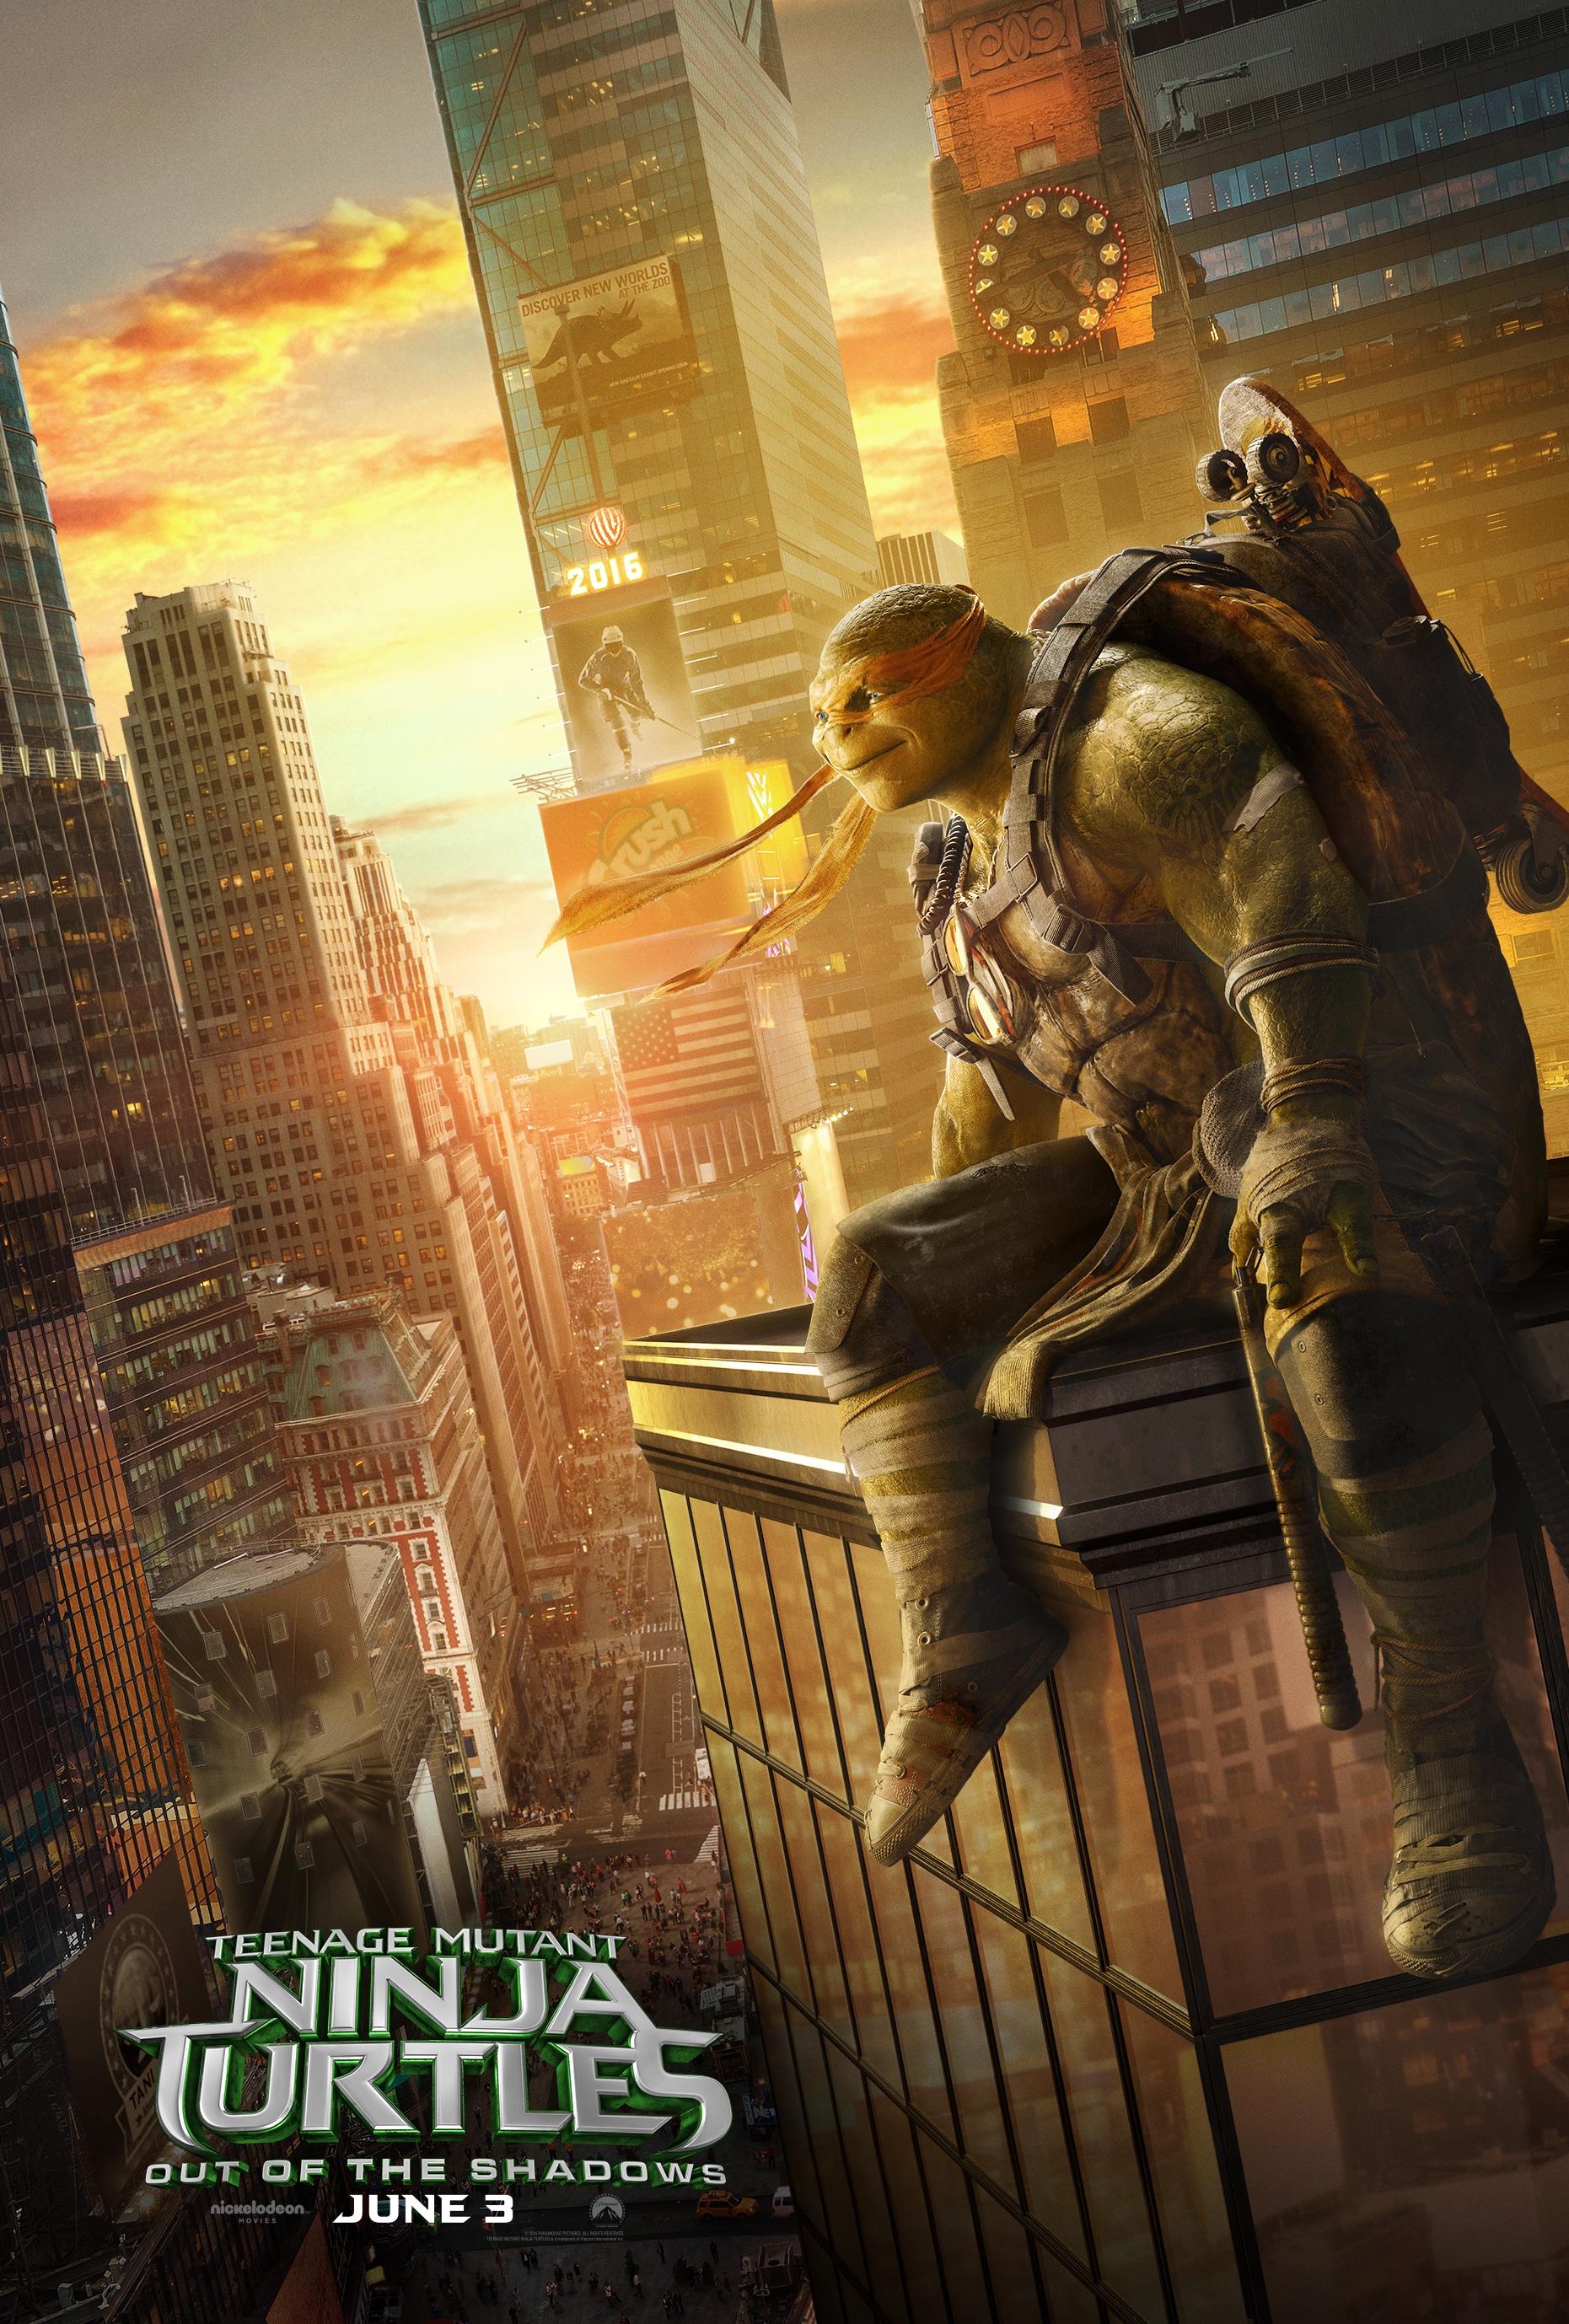 TMNT 2 Character Posters: Watchful Guardians in a Half-Shell